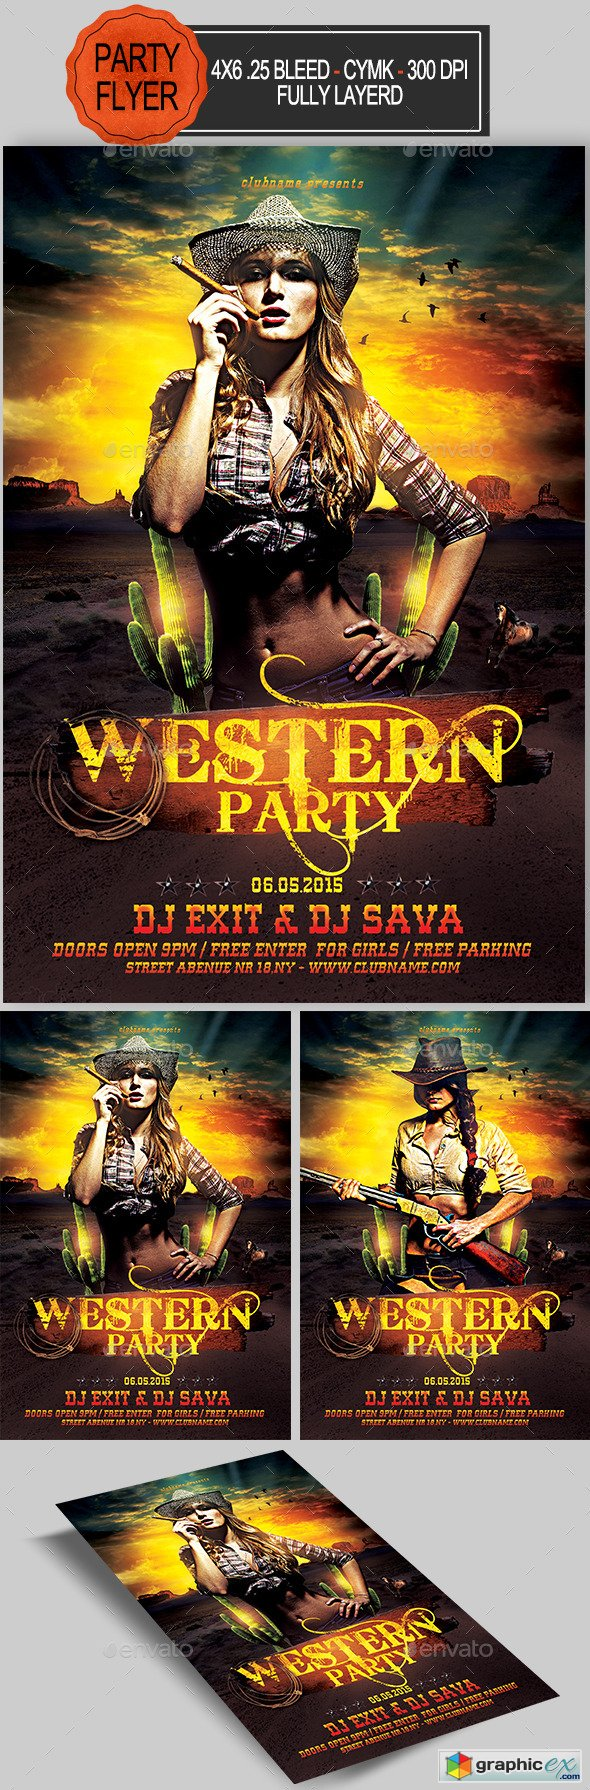 Western Party Flyer 11561353